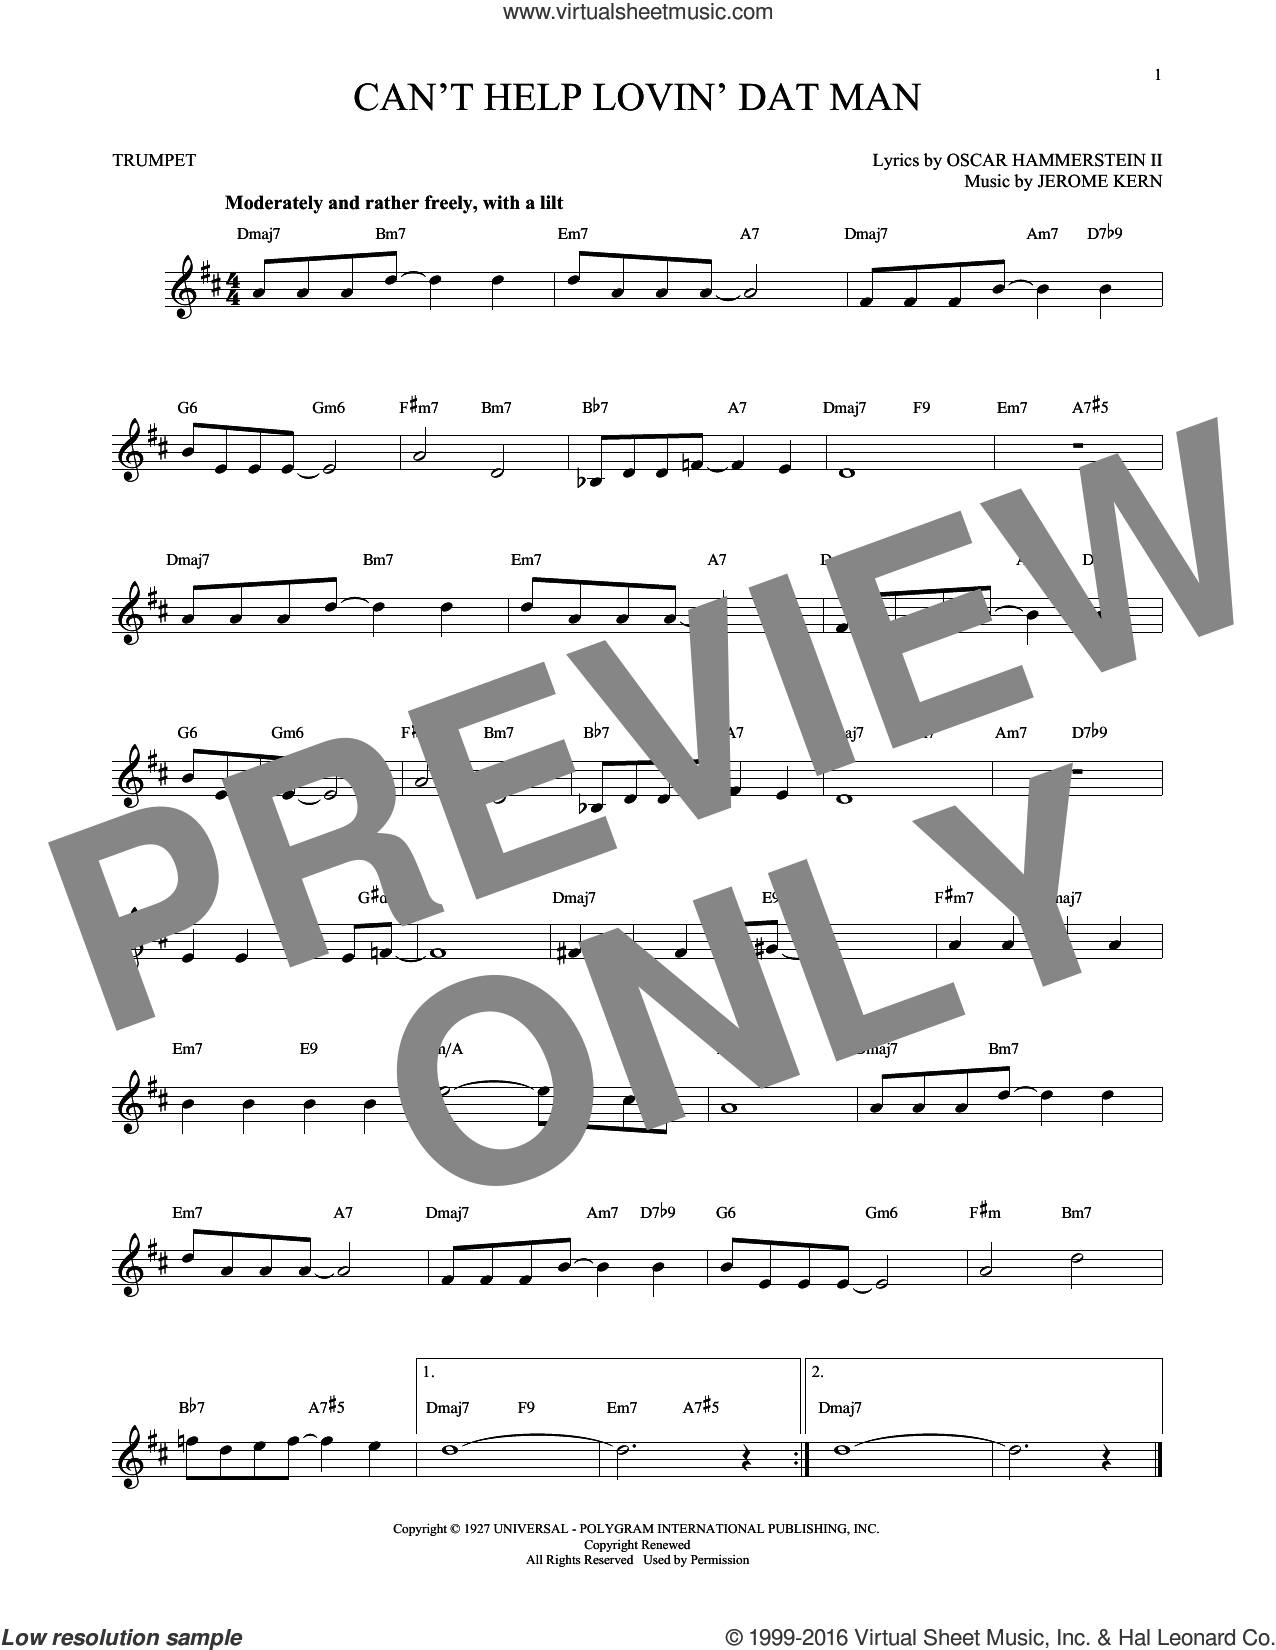 Can't Help Lovin' Dat Man sheet music for trumpet solo by Oscar II Hammerstein, Annette Warren, Helen Morgan and Jerome Kern, intermediate skill level